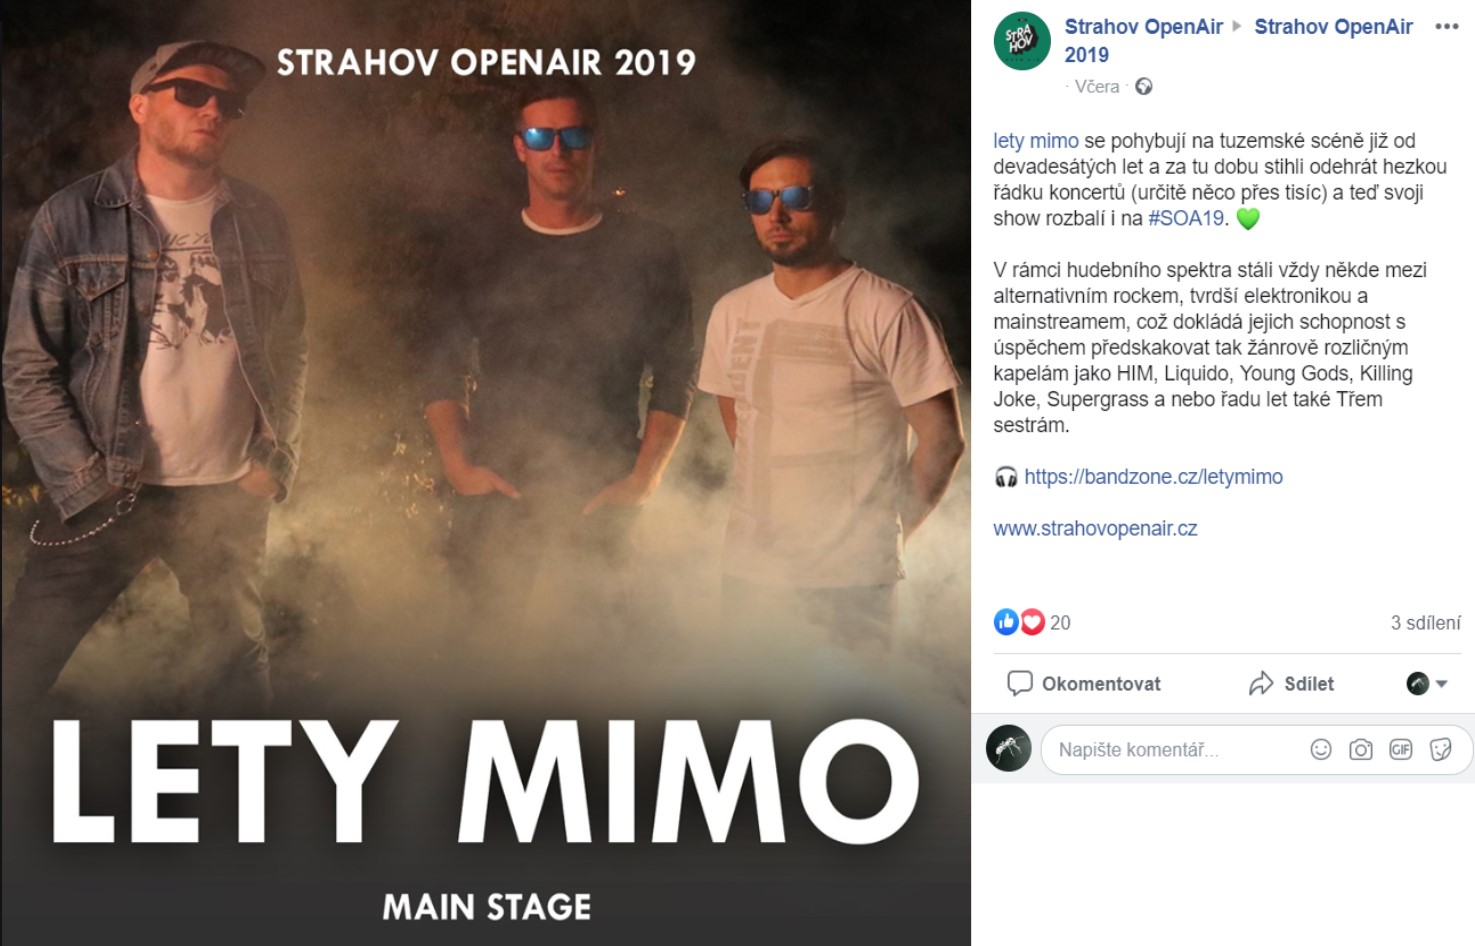 Srahov Open Air 2019